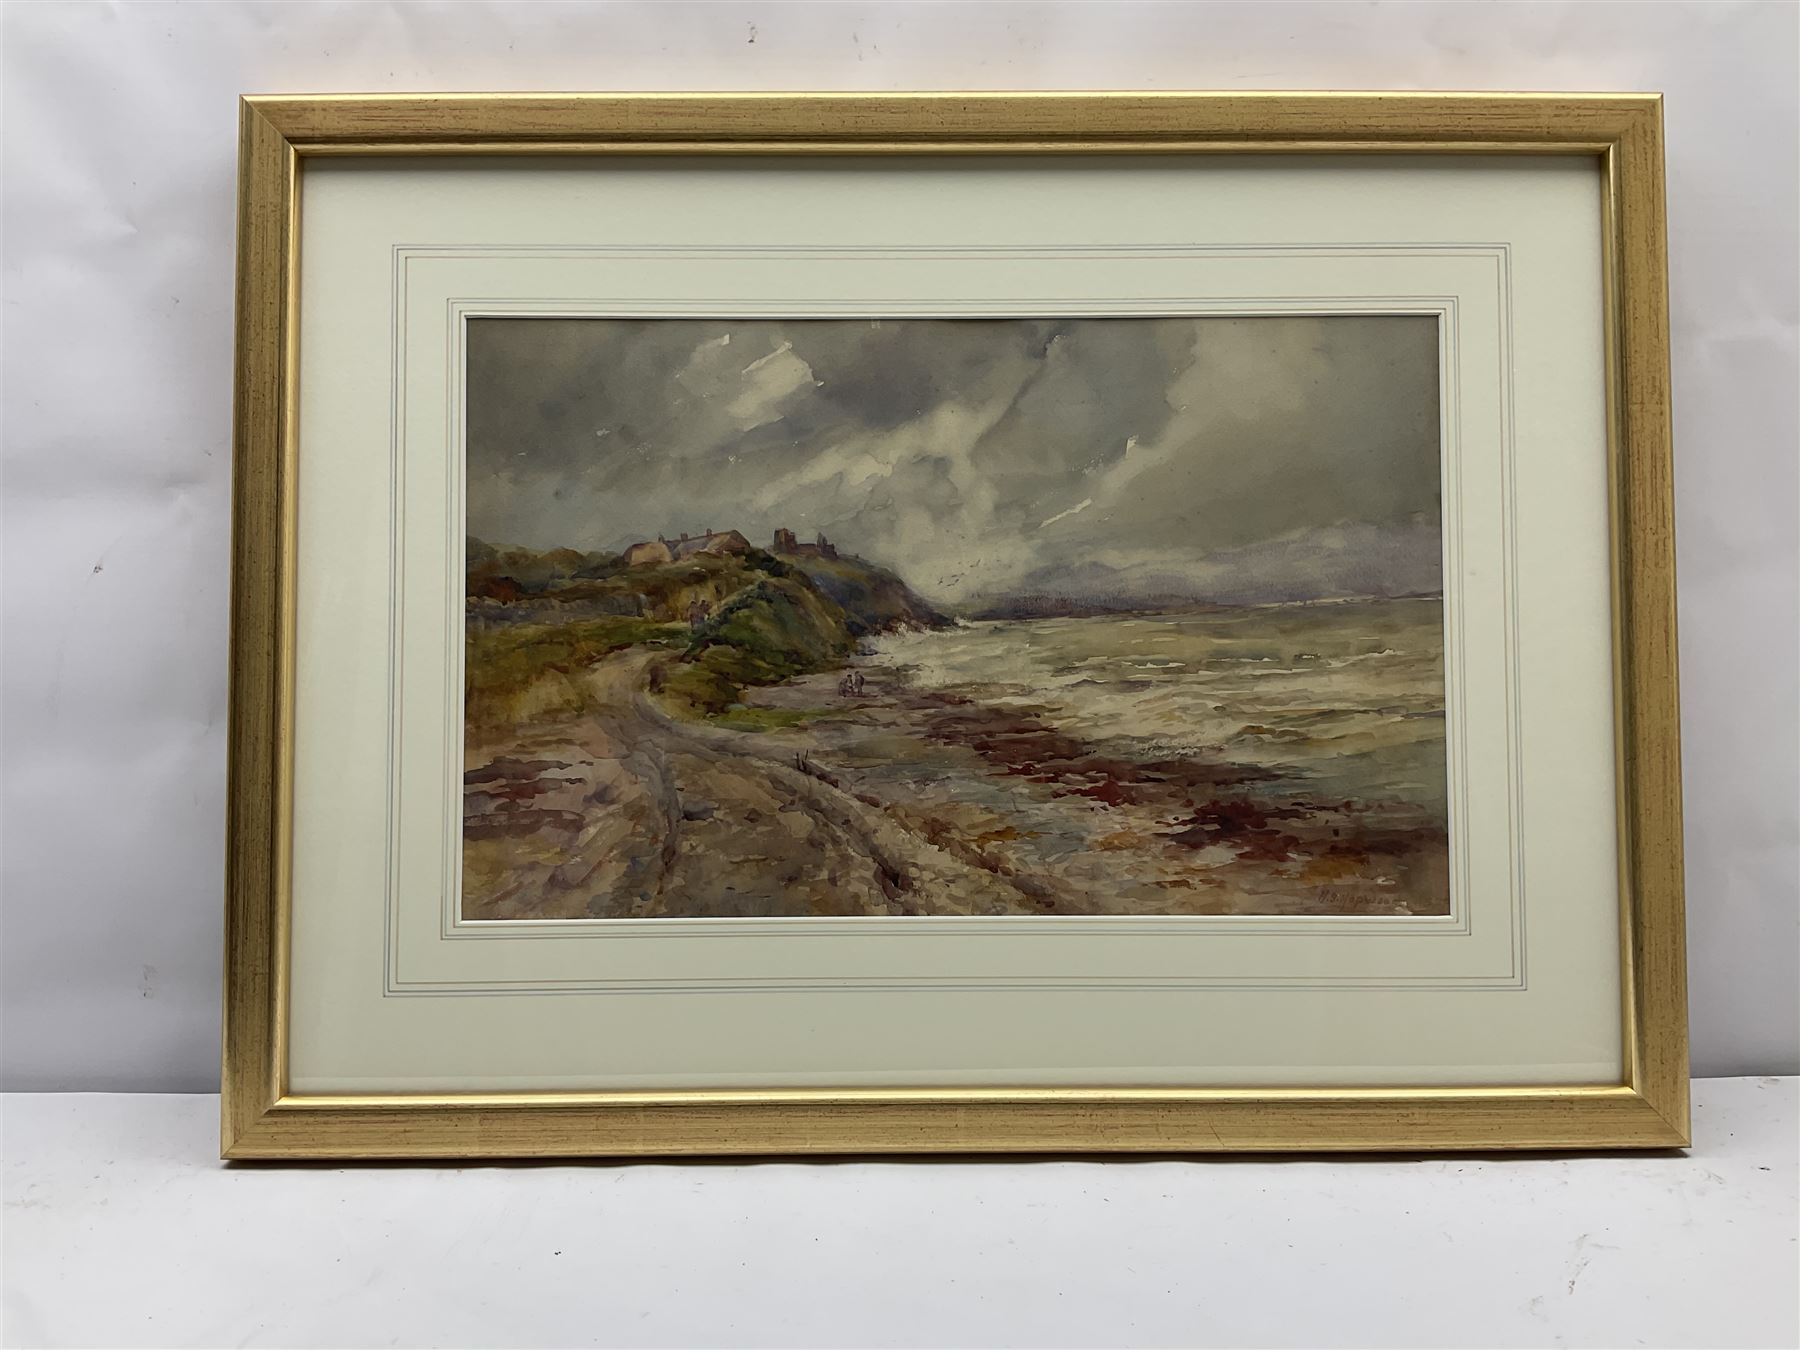 Henry Silkstone Hopwood (Staithes Group 1860-1914): Coastal scene with Figures and Cottages - Image 3 of 4